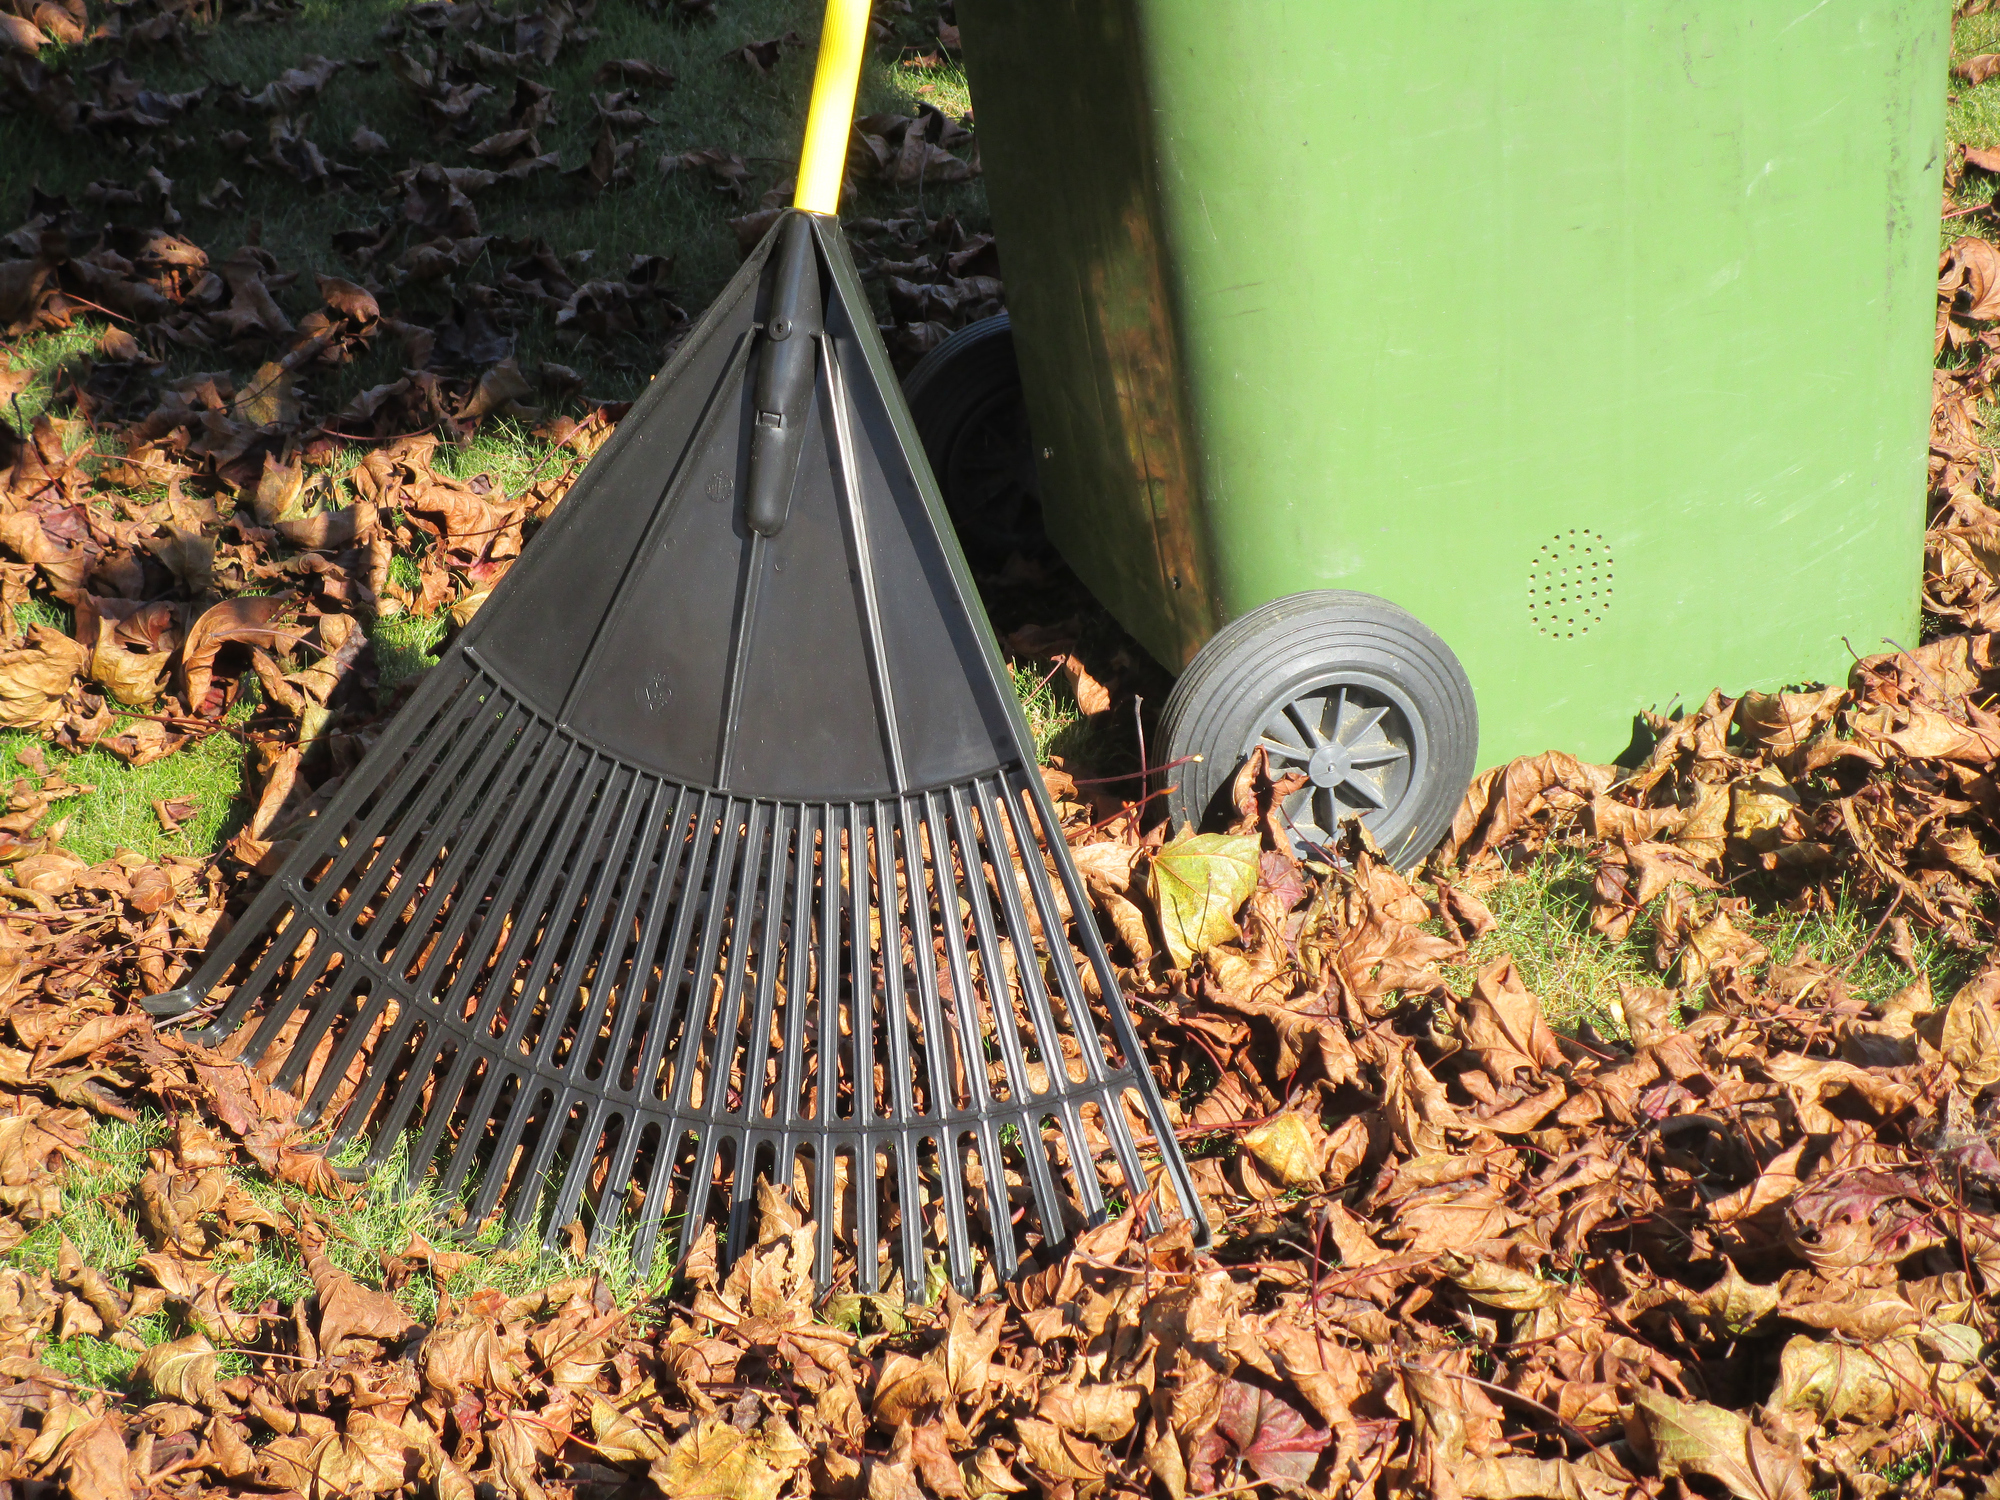 Raking leaves (Thinkstock/PA)